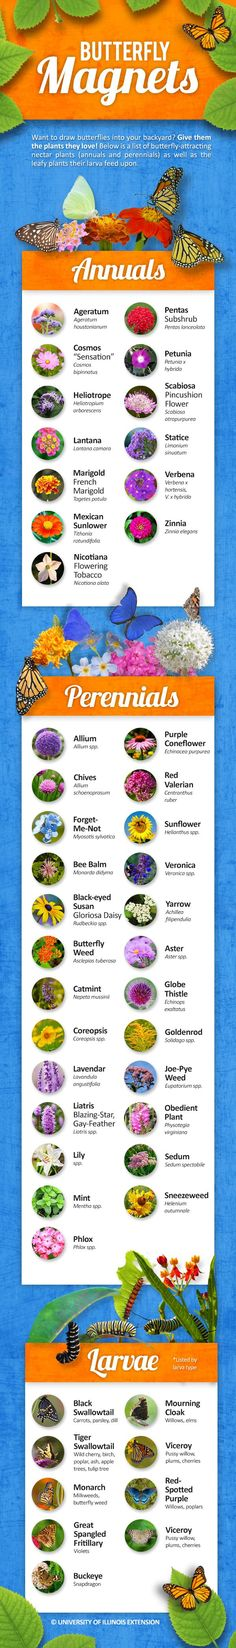 butterfly garden UPDATED Infographic: Want more butterflies in your yard Plant the nectar plants they love! Heres a great list of butterfly-attracting annual and perennial plants including those needed for butterfly larvae. Outdoor Plants, Garden Plants, Outdoor Gardens, Shade Garden, Butterfly Plants, Butterflies, Butterfly Feeder, Diy Butterfly, Butterfly Bush